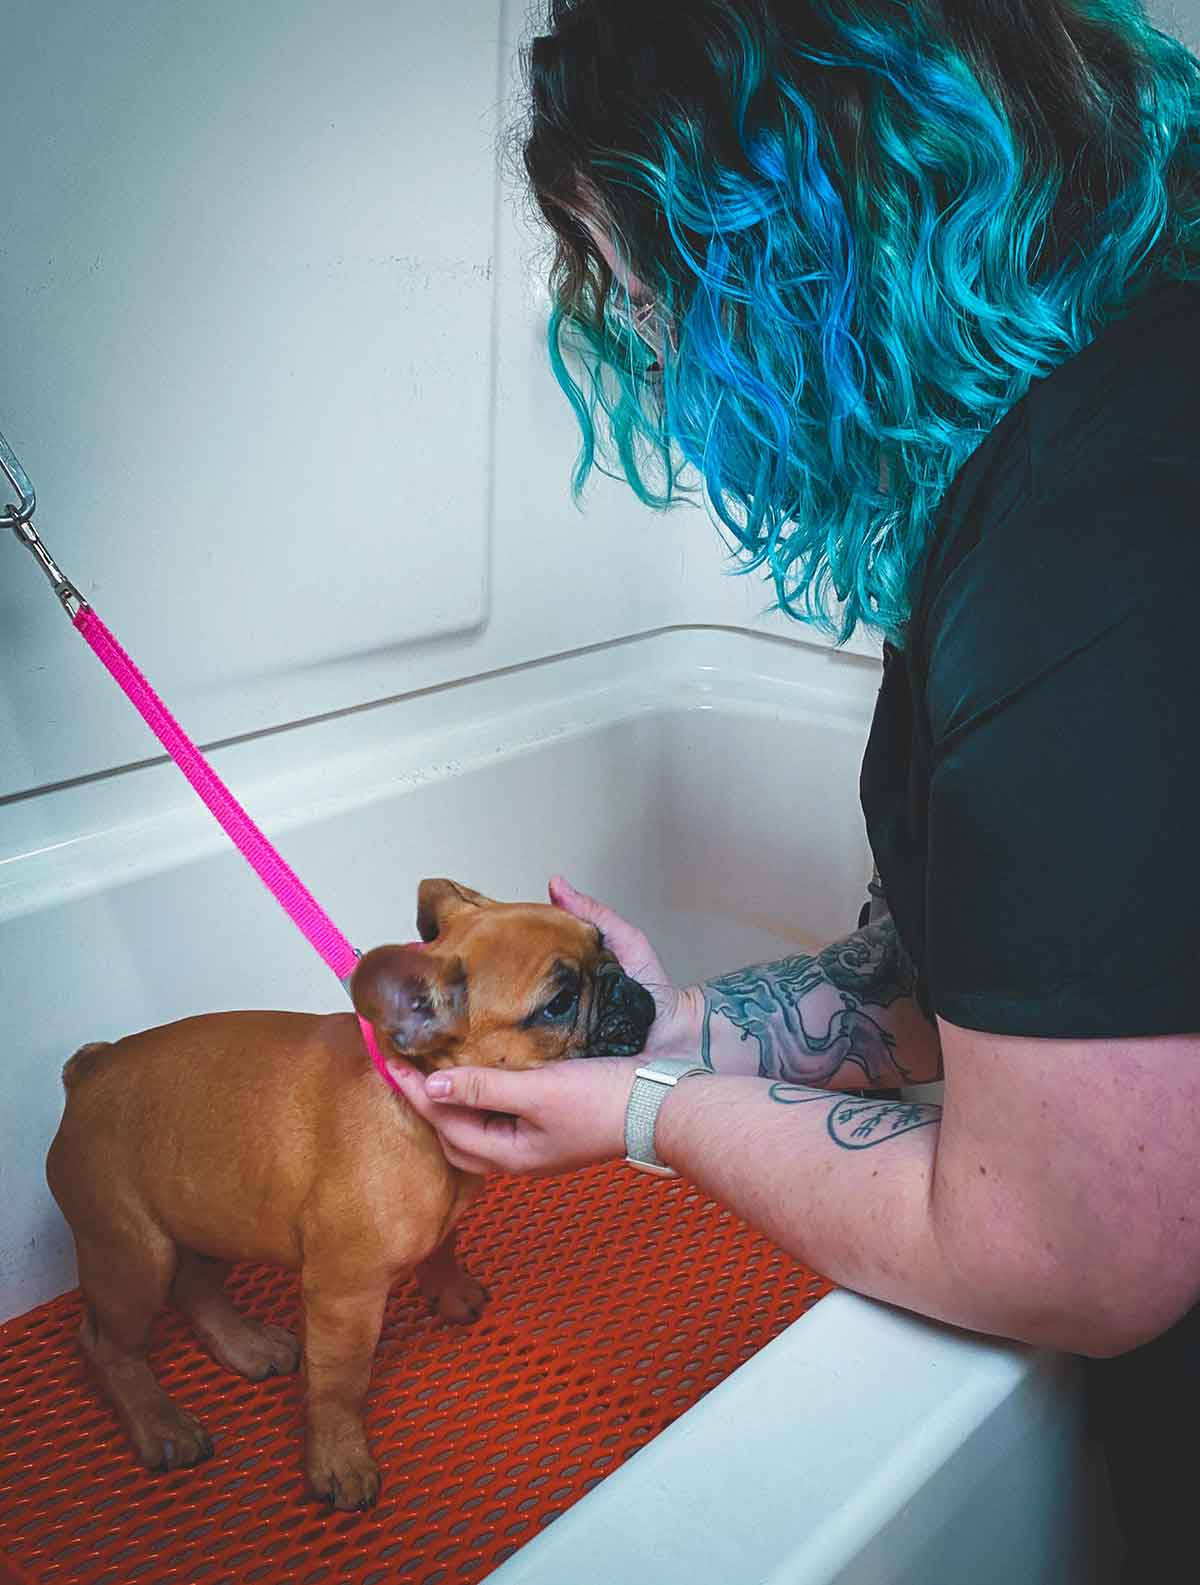 Taylor grooming a little frenchie dog